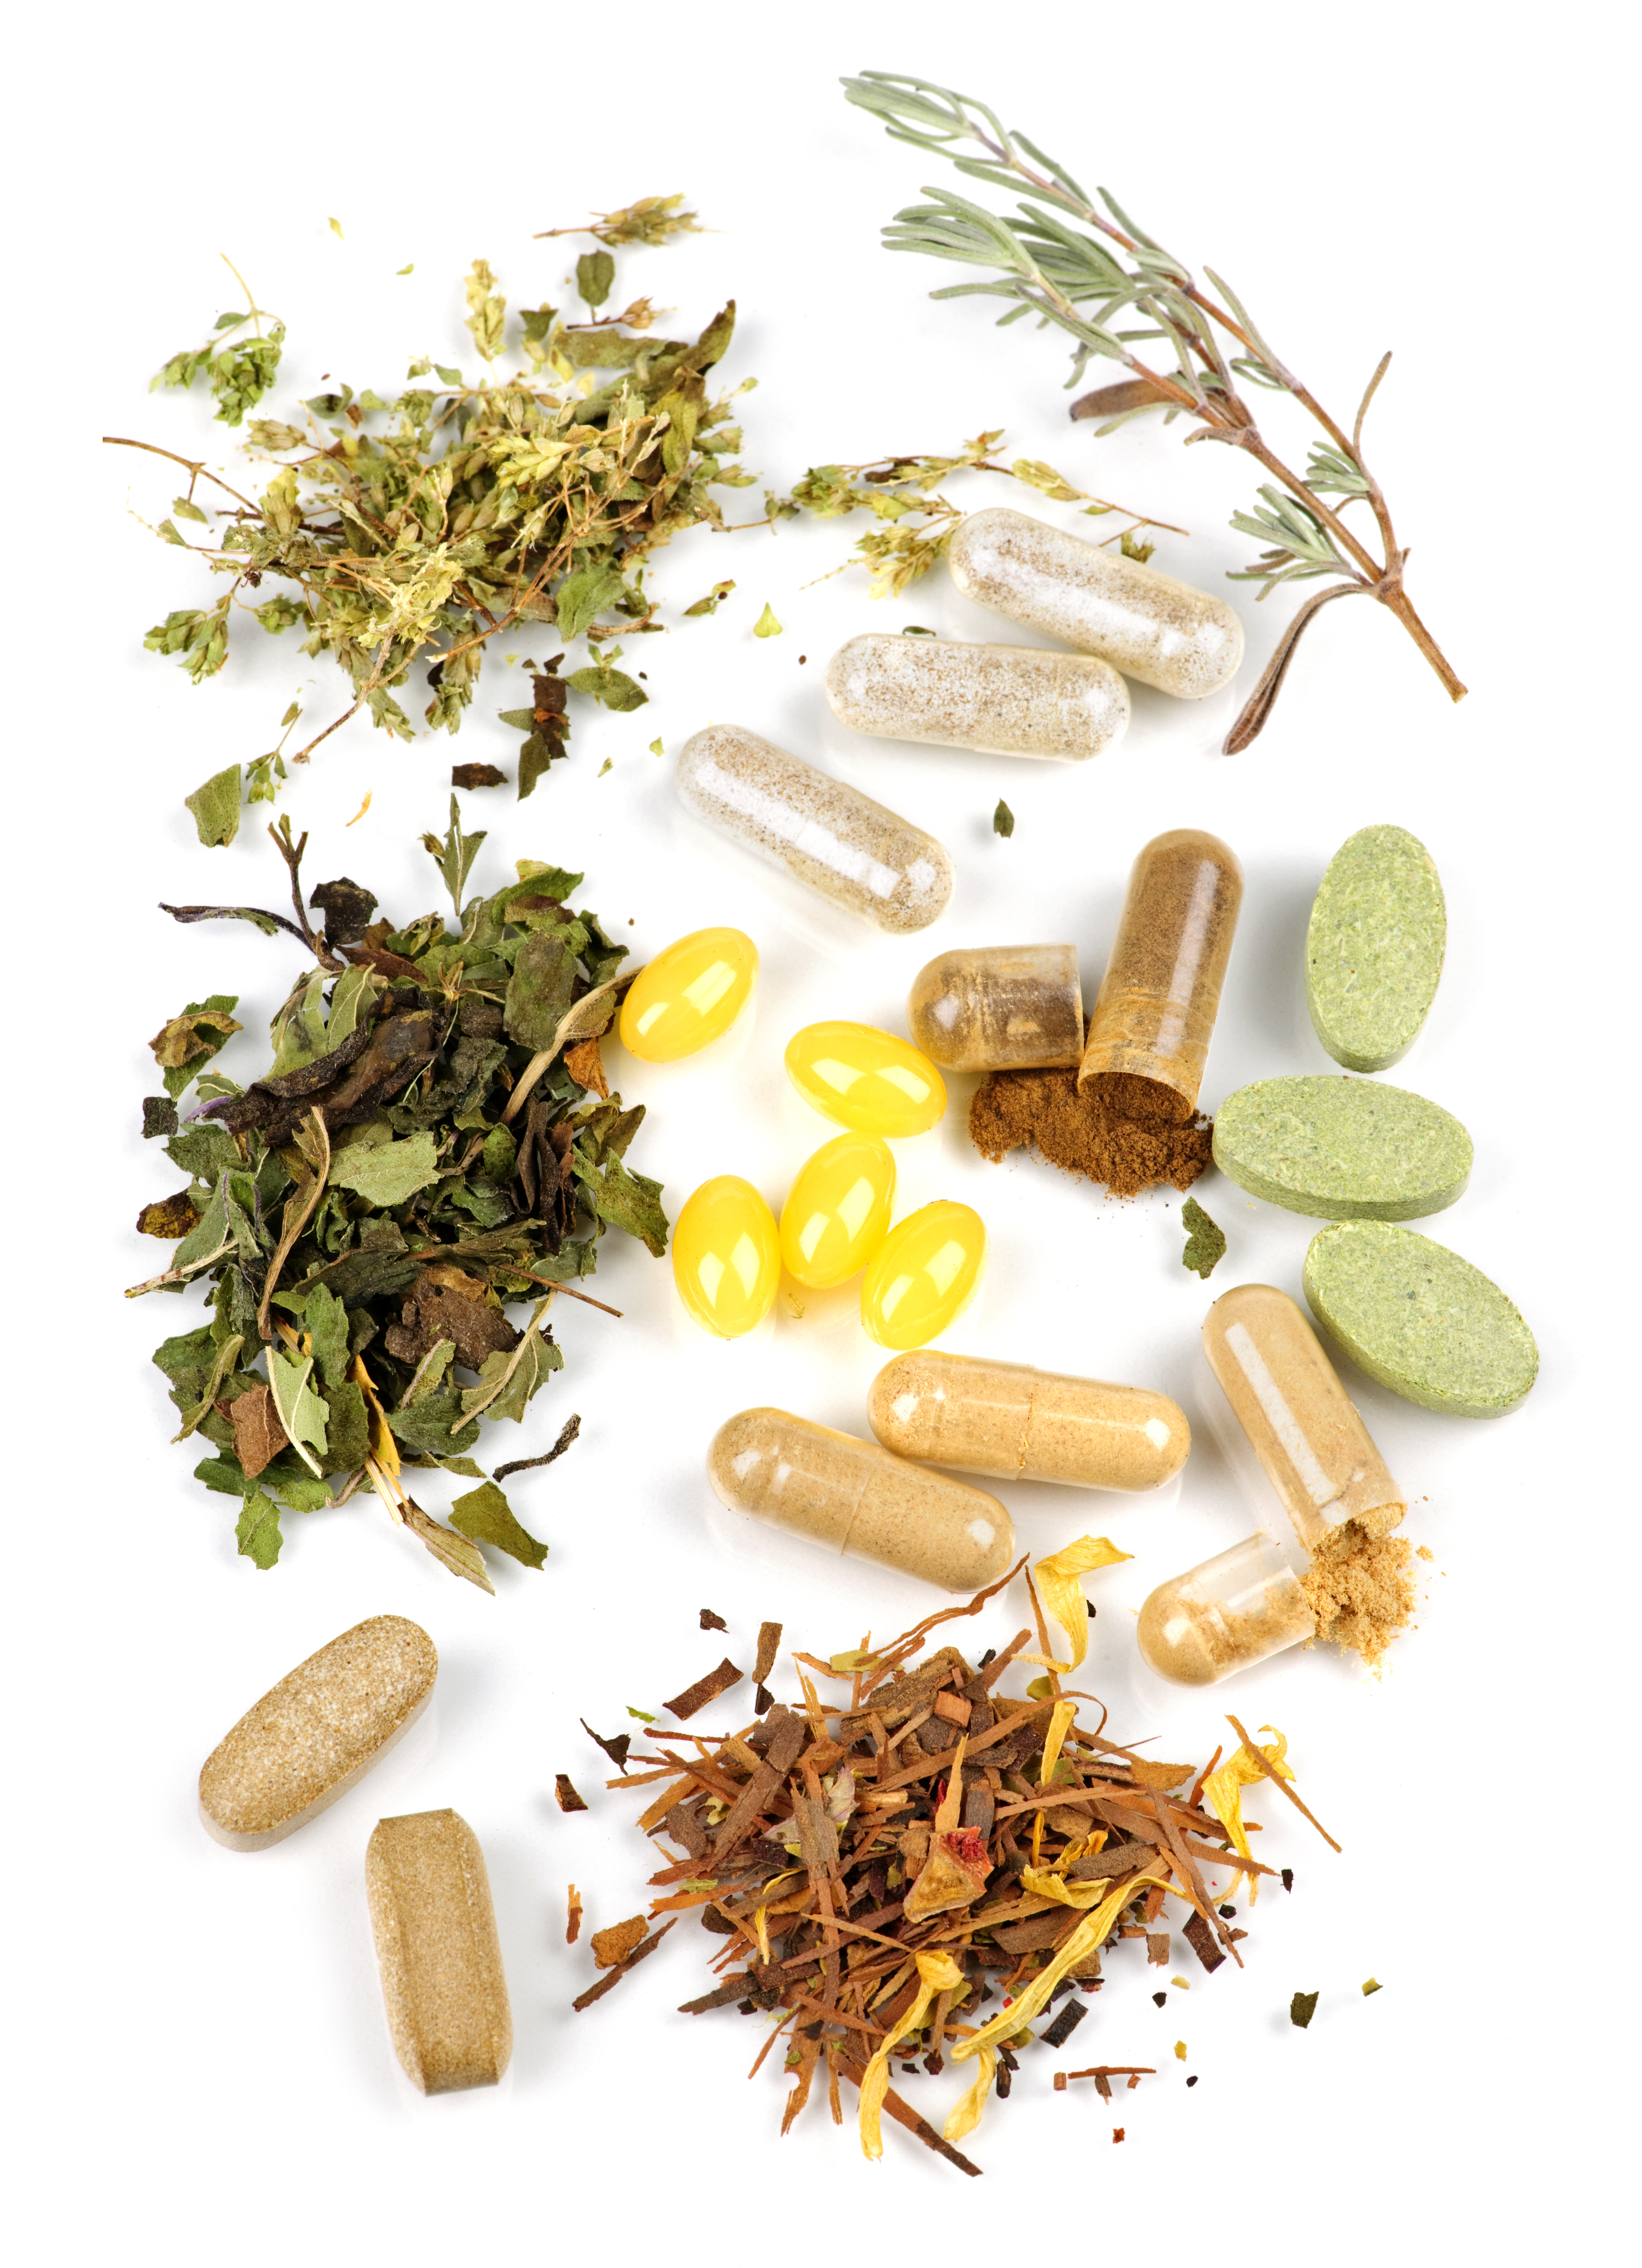 Important Anti-Aging Nutrients For All Ages